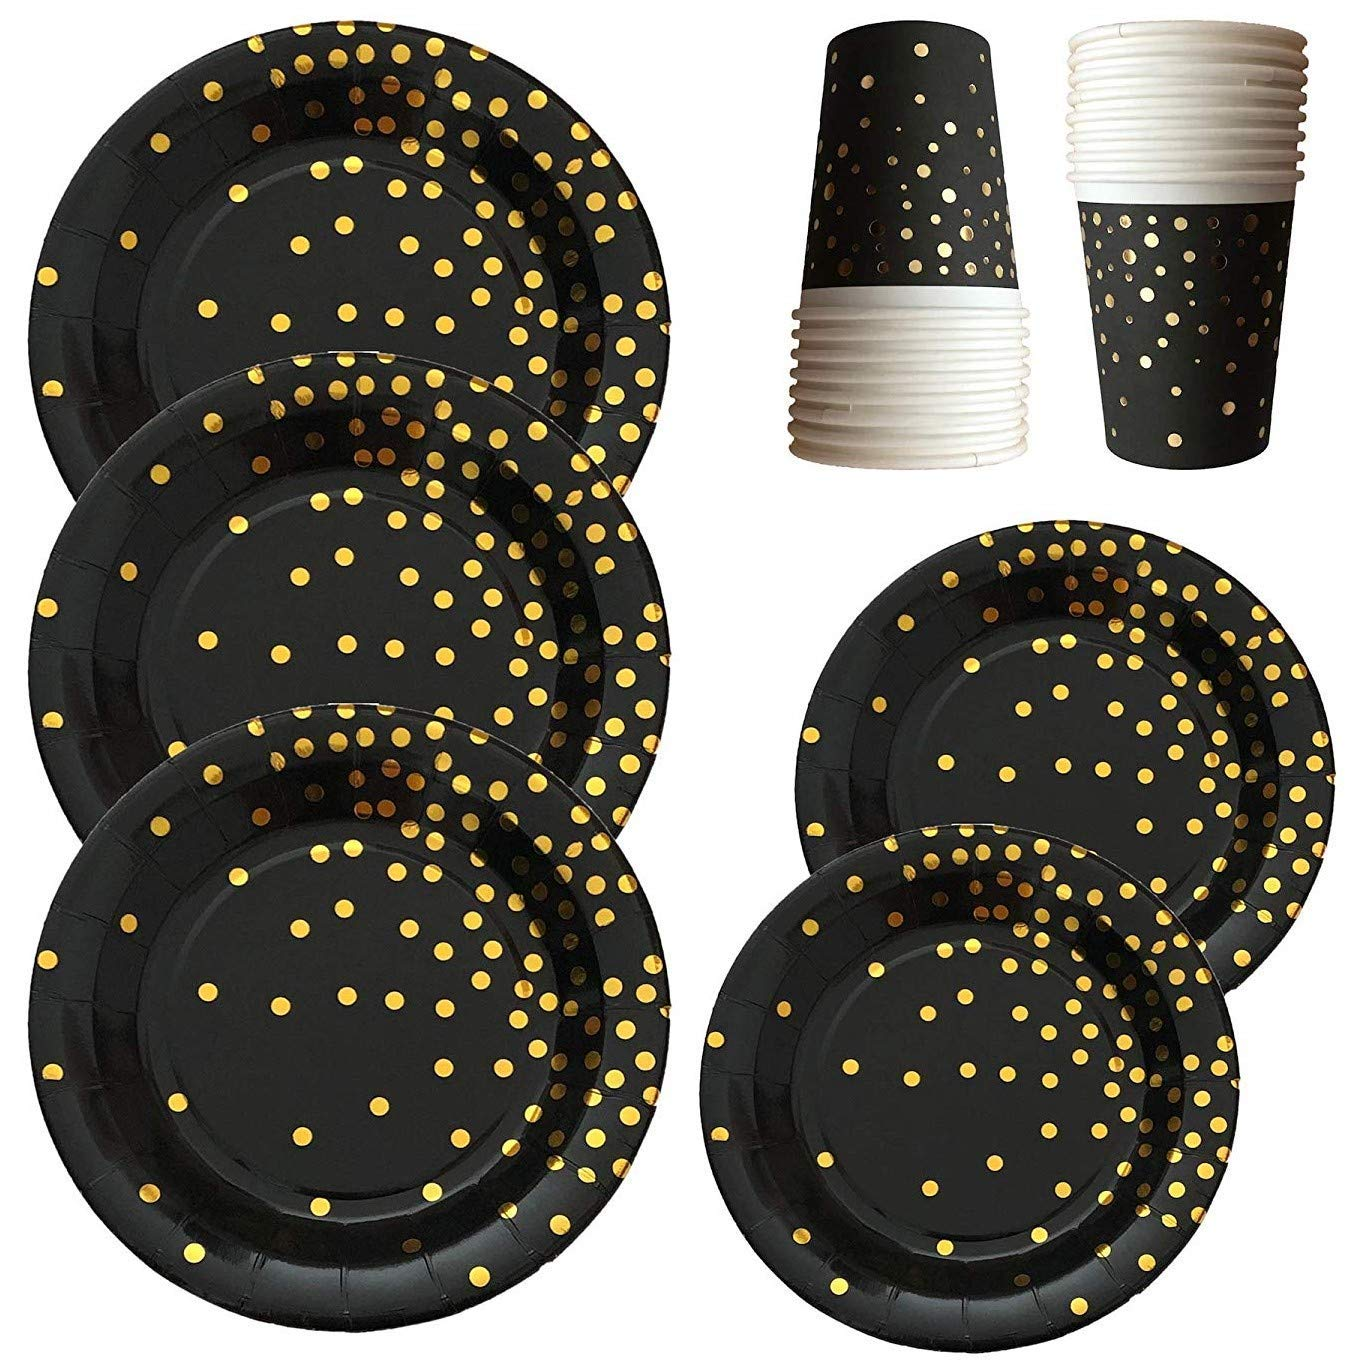 Black and Gold Party Supplies - 72-piece 24 Sets Disposable Paper Plates with Gold Foiled Polka Dot Confetti Disposable Dinnerware Plates and Cups Party Set - 9'' Plates, 7'' Plates, 9oz Cups by Partay Shenanigans